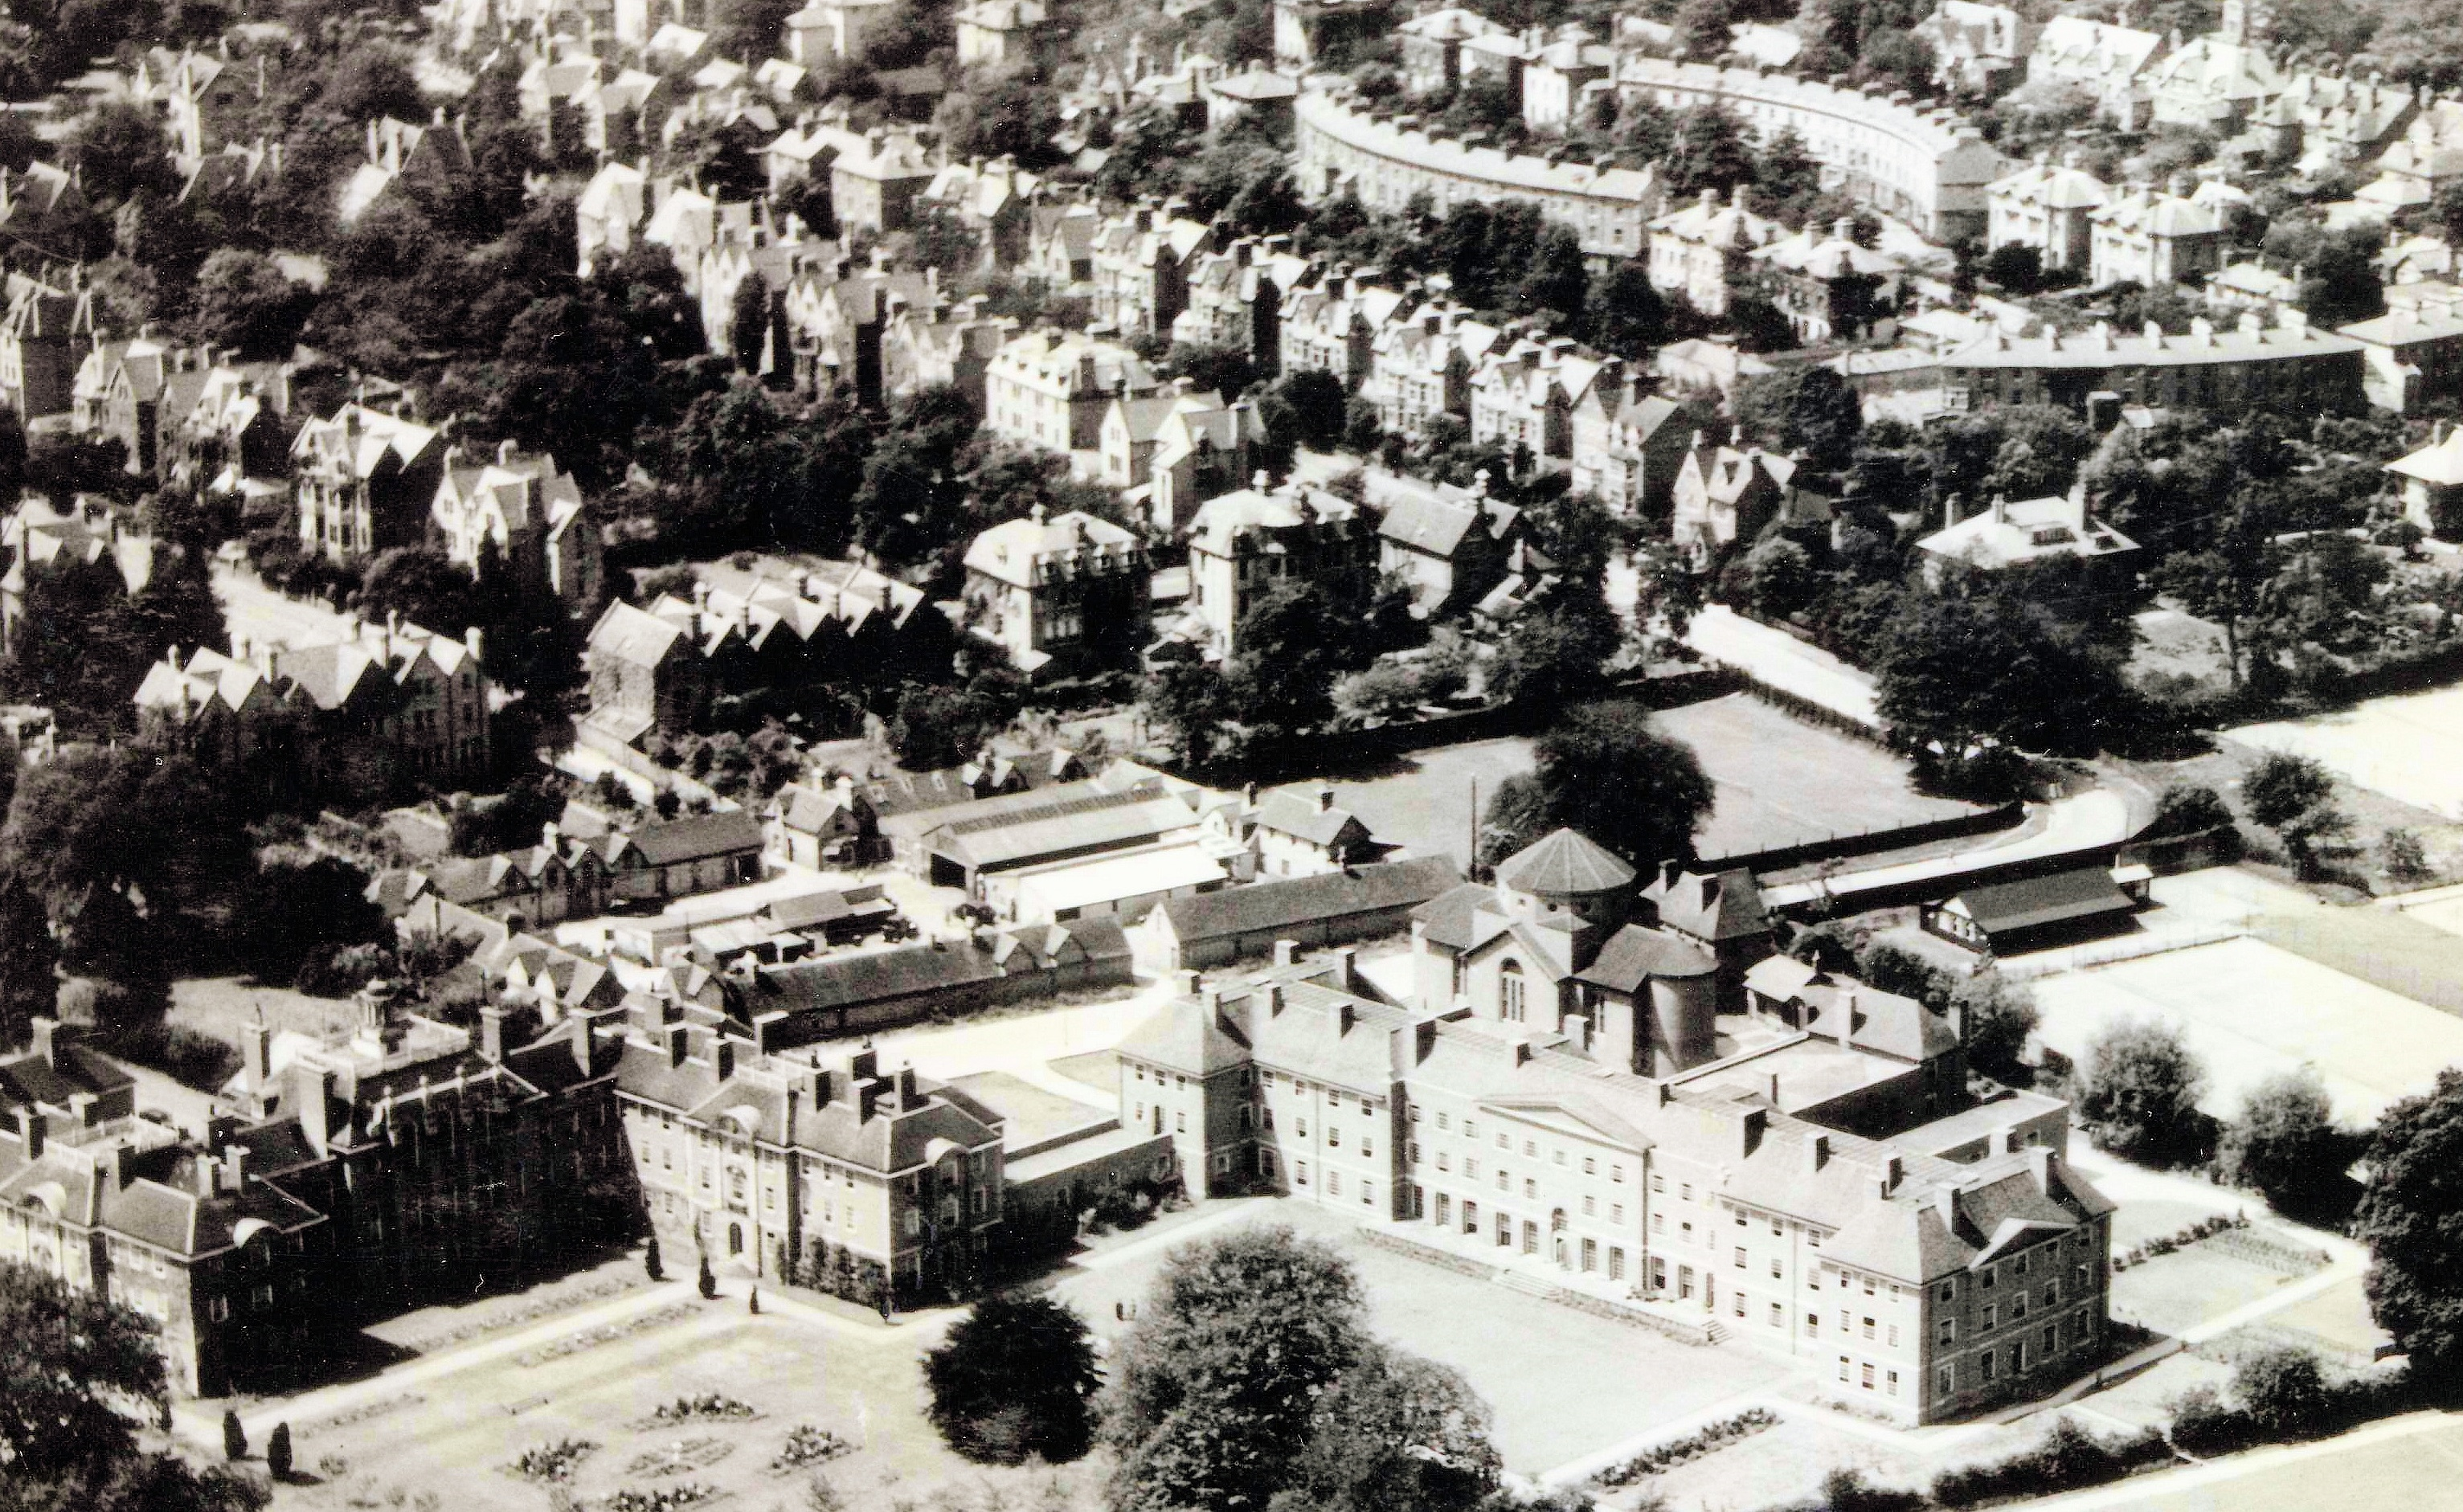 Aerial monochrome photograph of LMH.